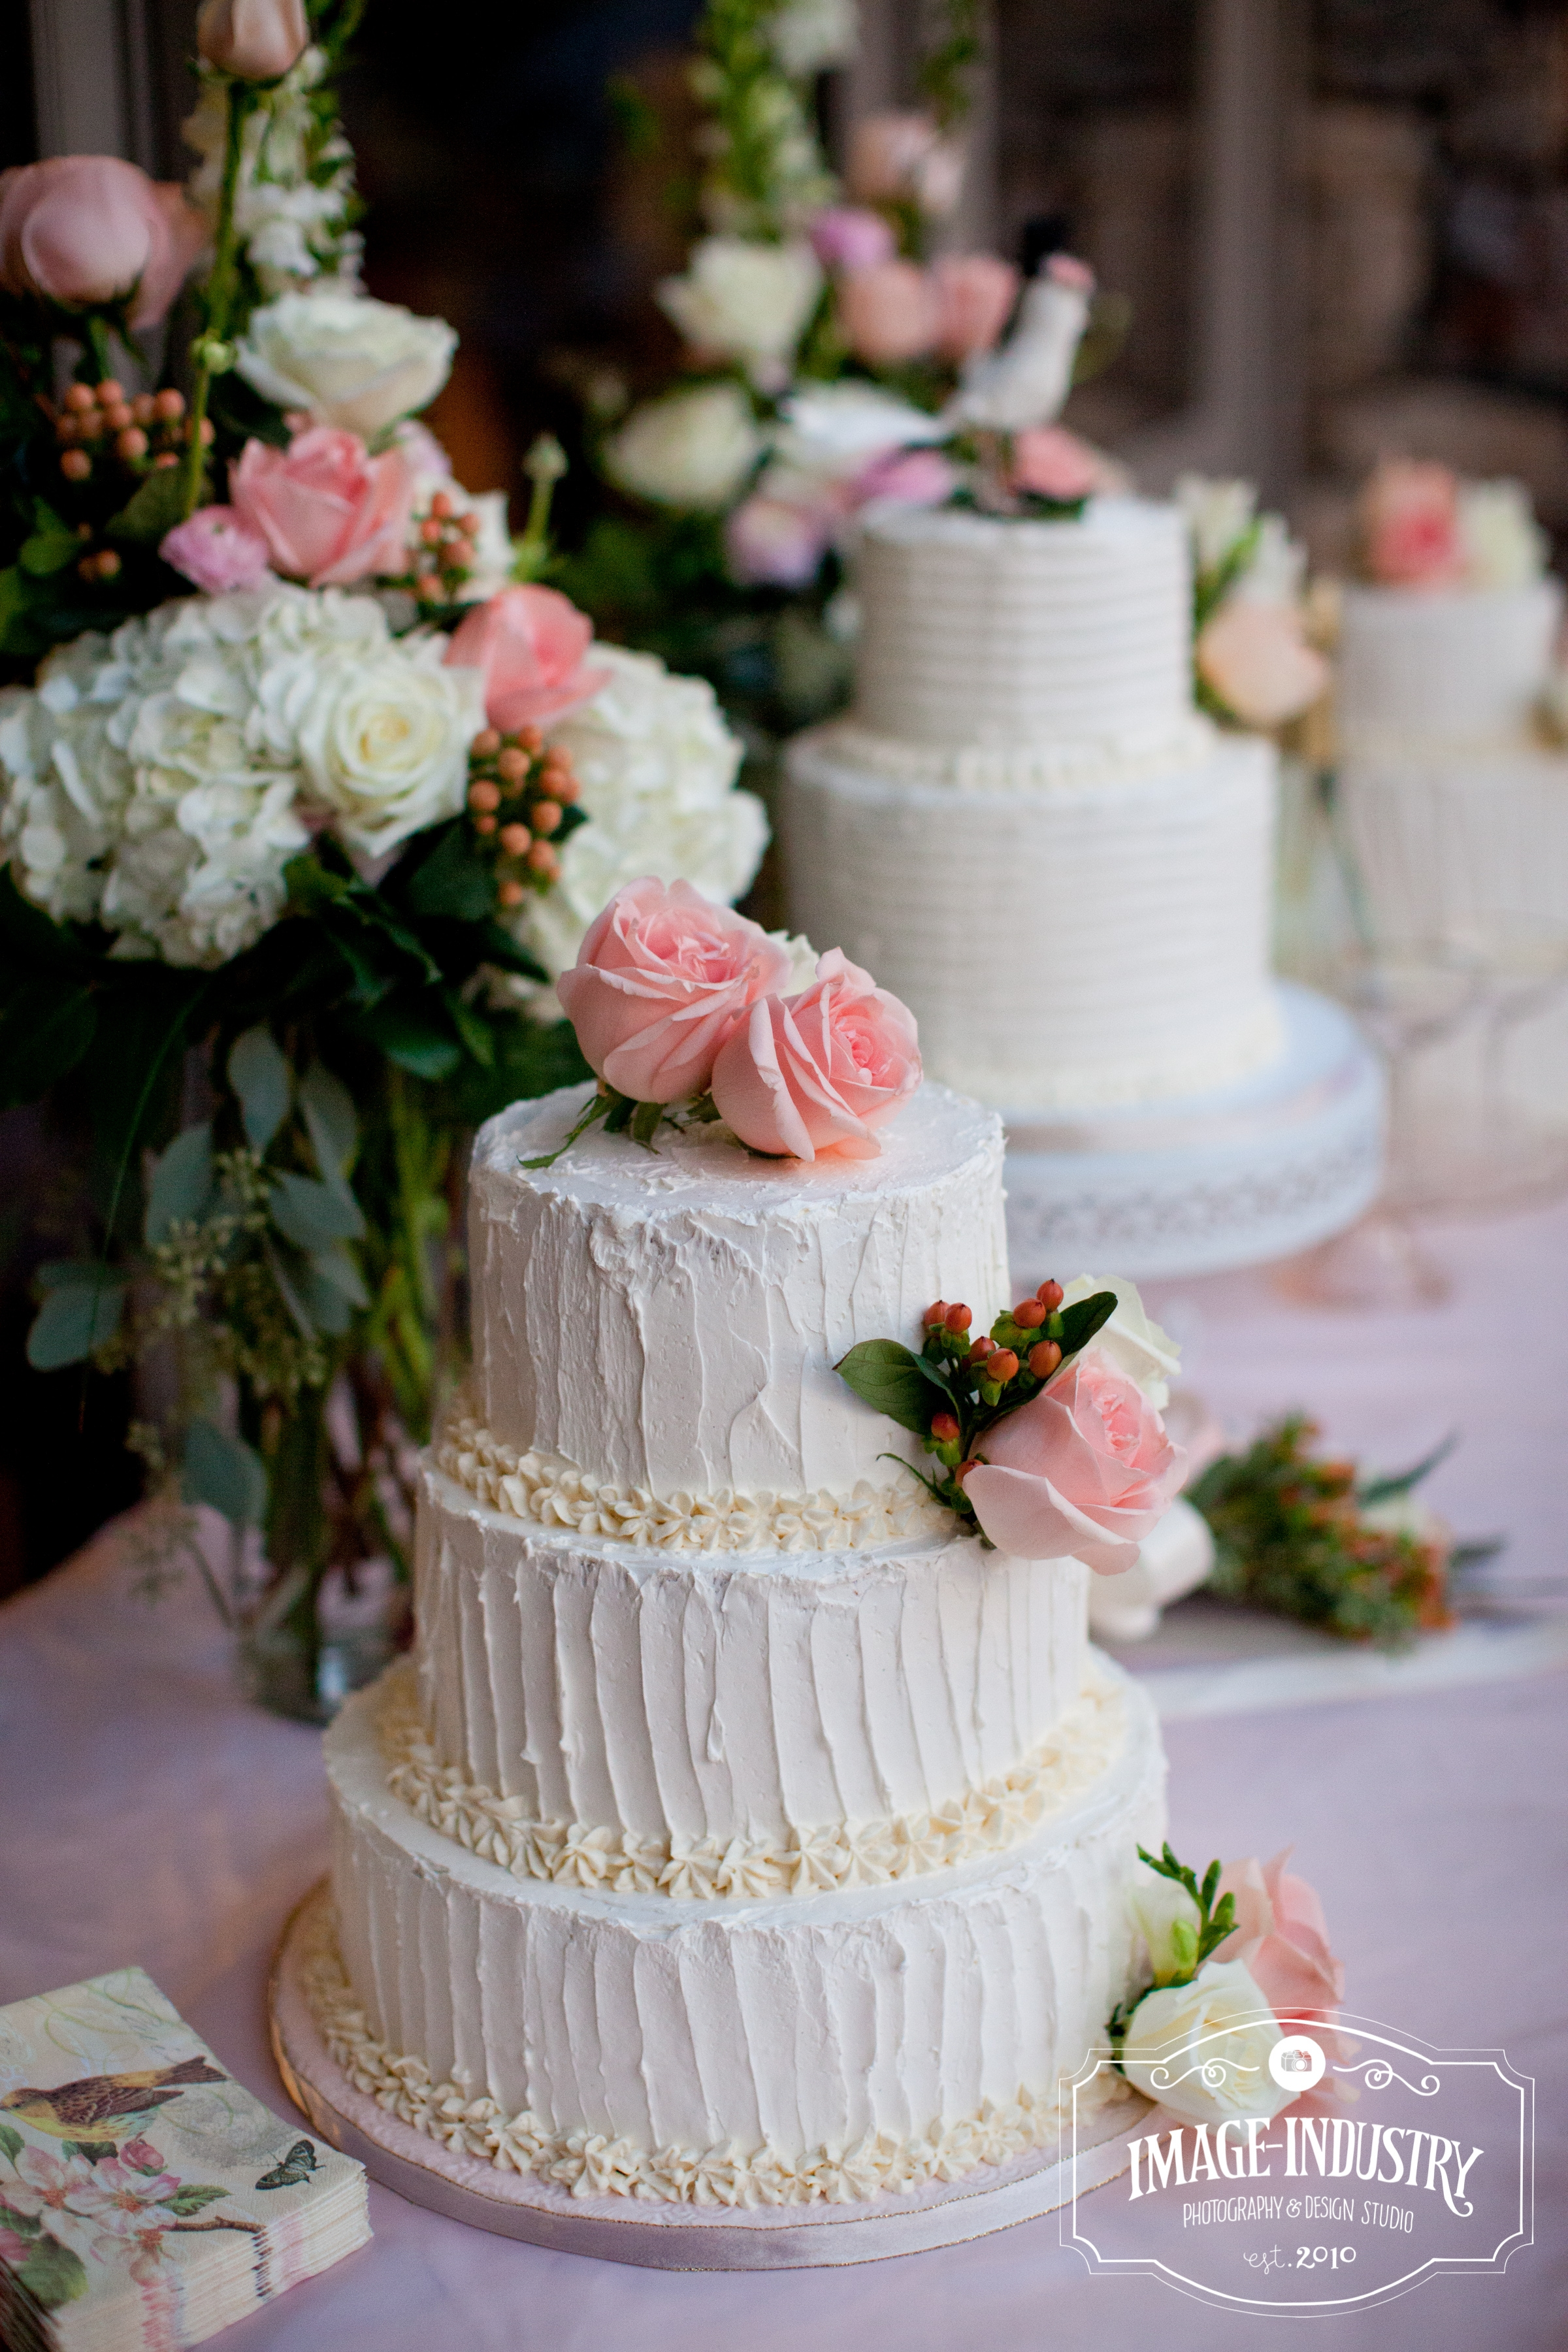 Trio Butter Cream Wedding Cakes All With A Different